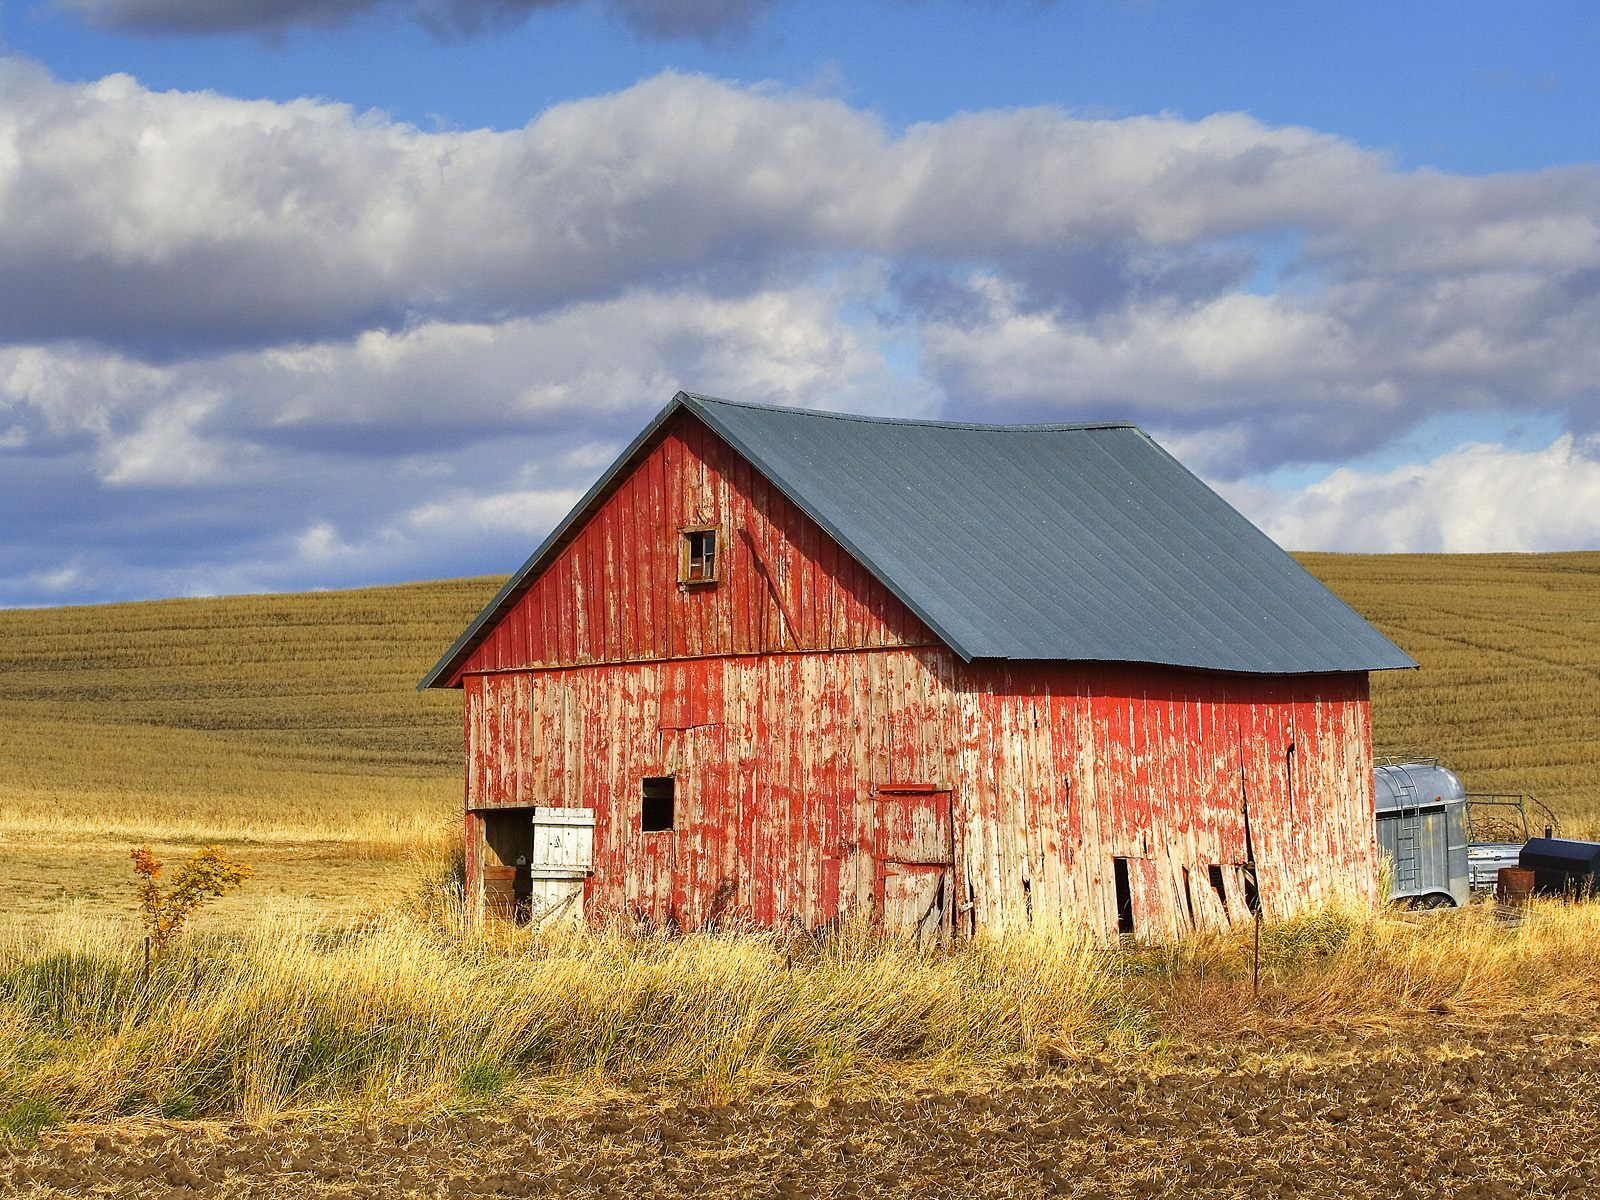 Nature Old Red Barn Palouse Washington picture nr 40448 1600x1200